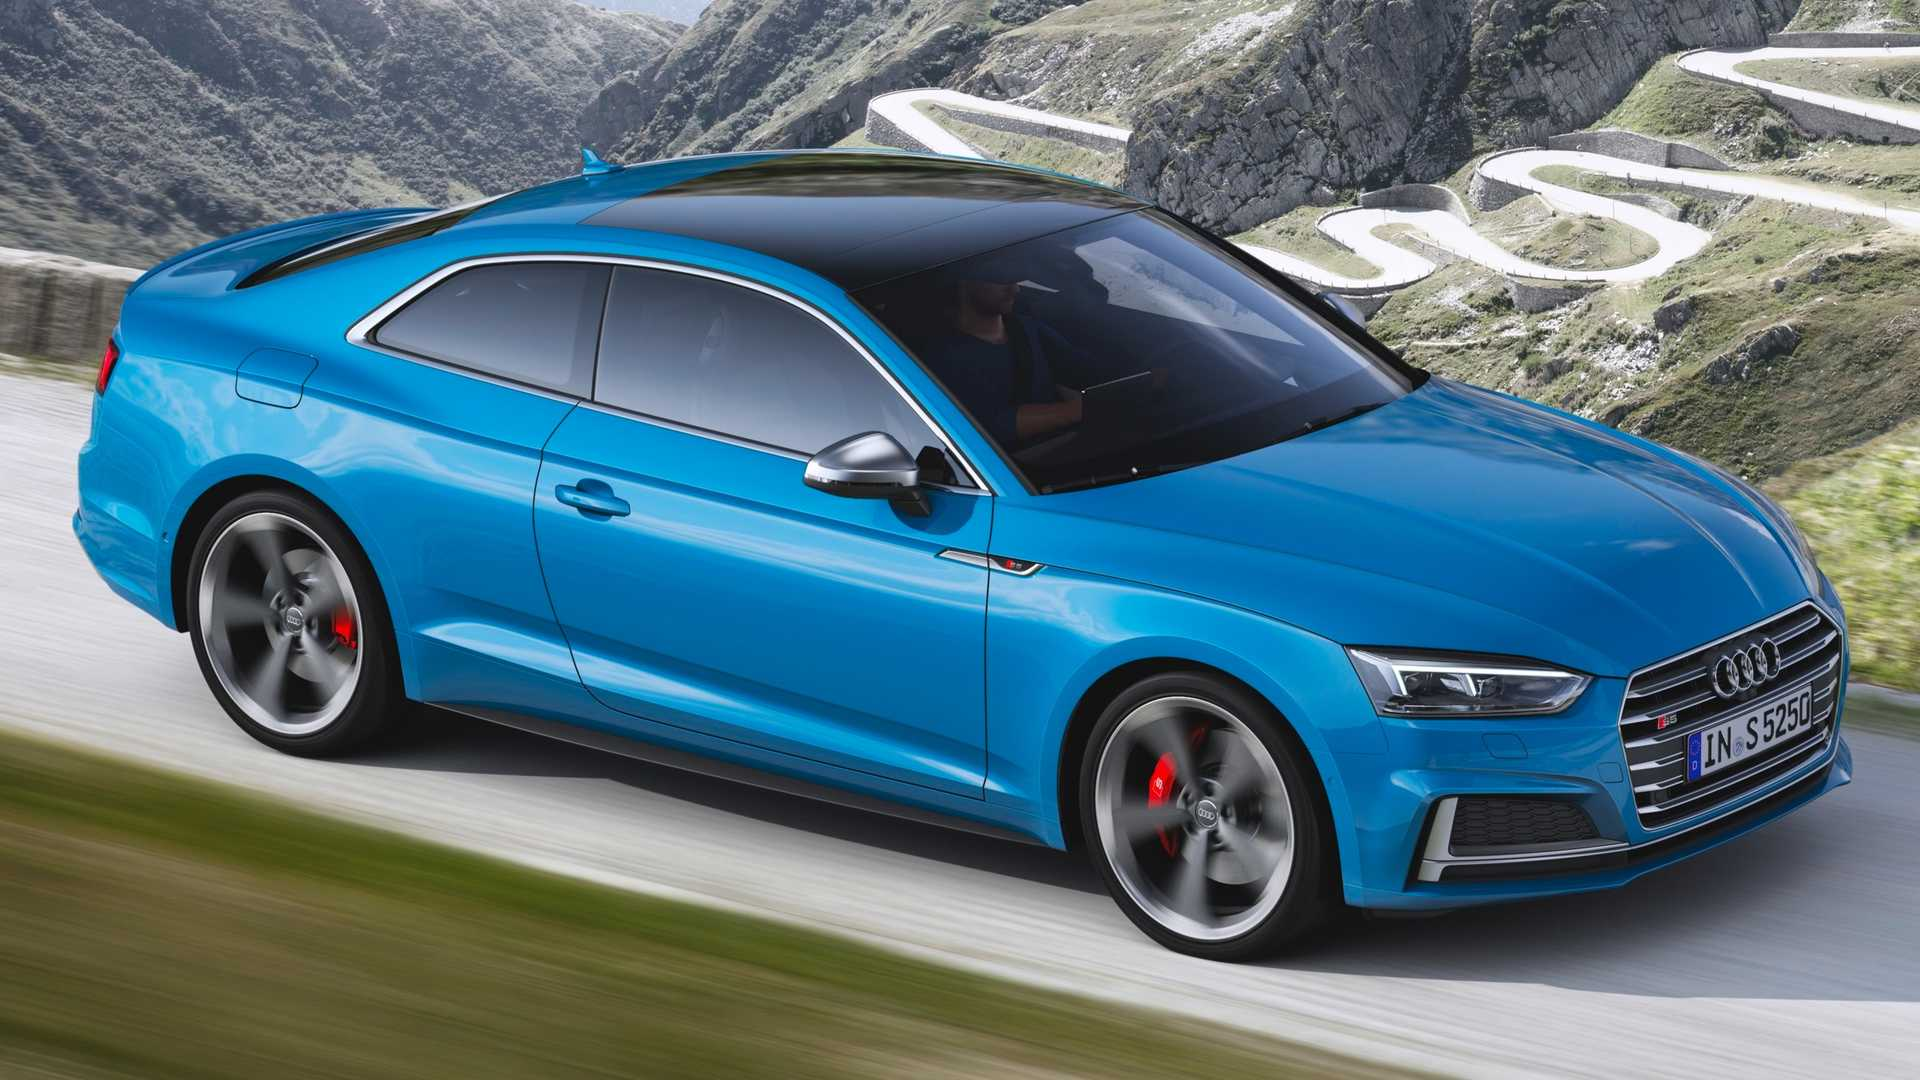 55 The Best 2019 Audi Rs5 Tdi Prices